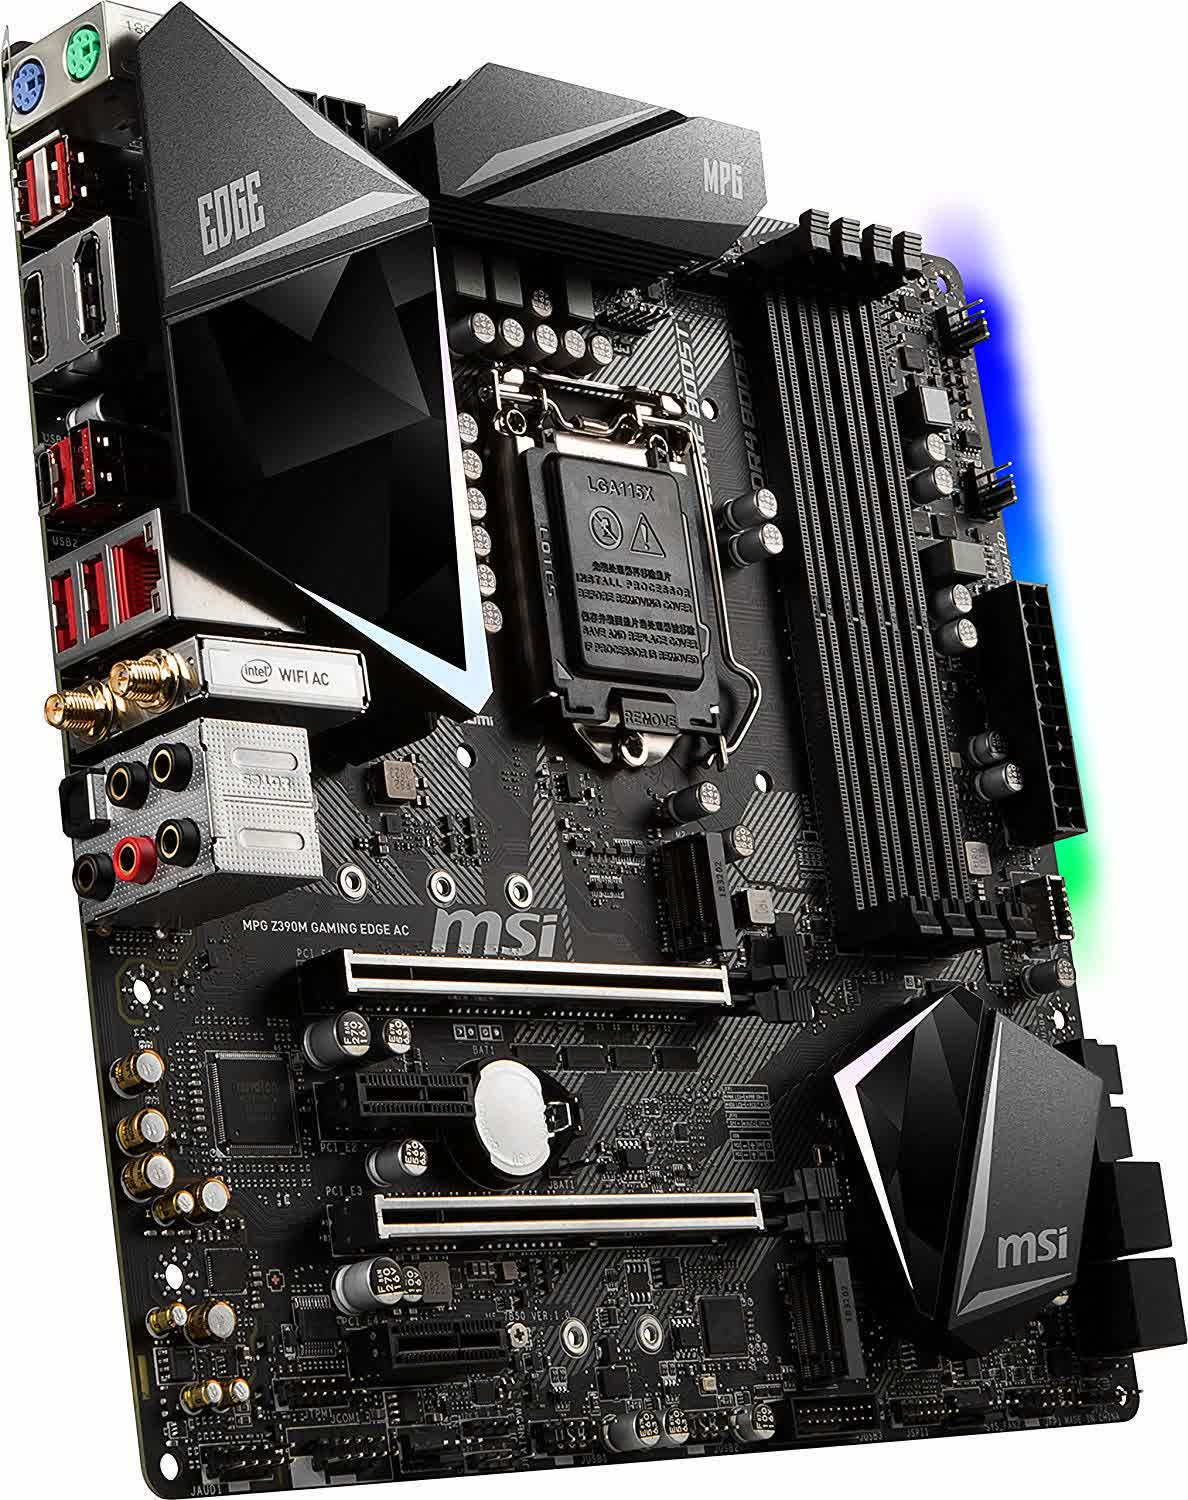 Top 5 Intel Z390 Motherboards - TechSpot